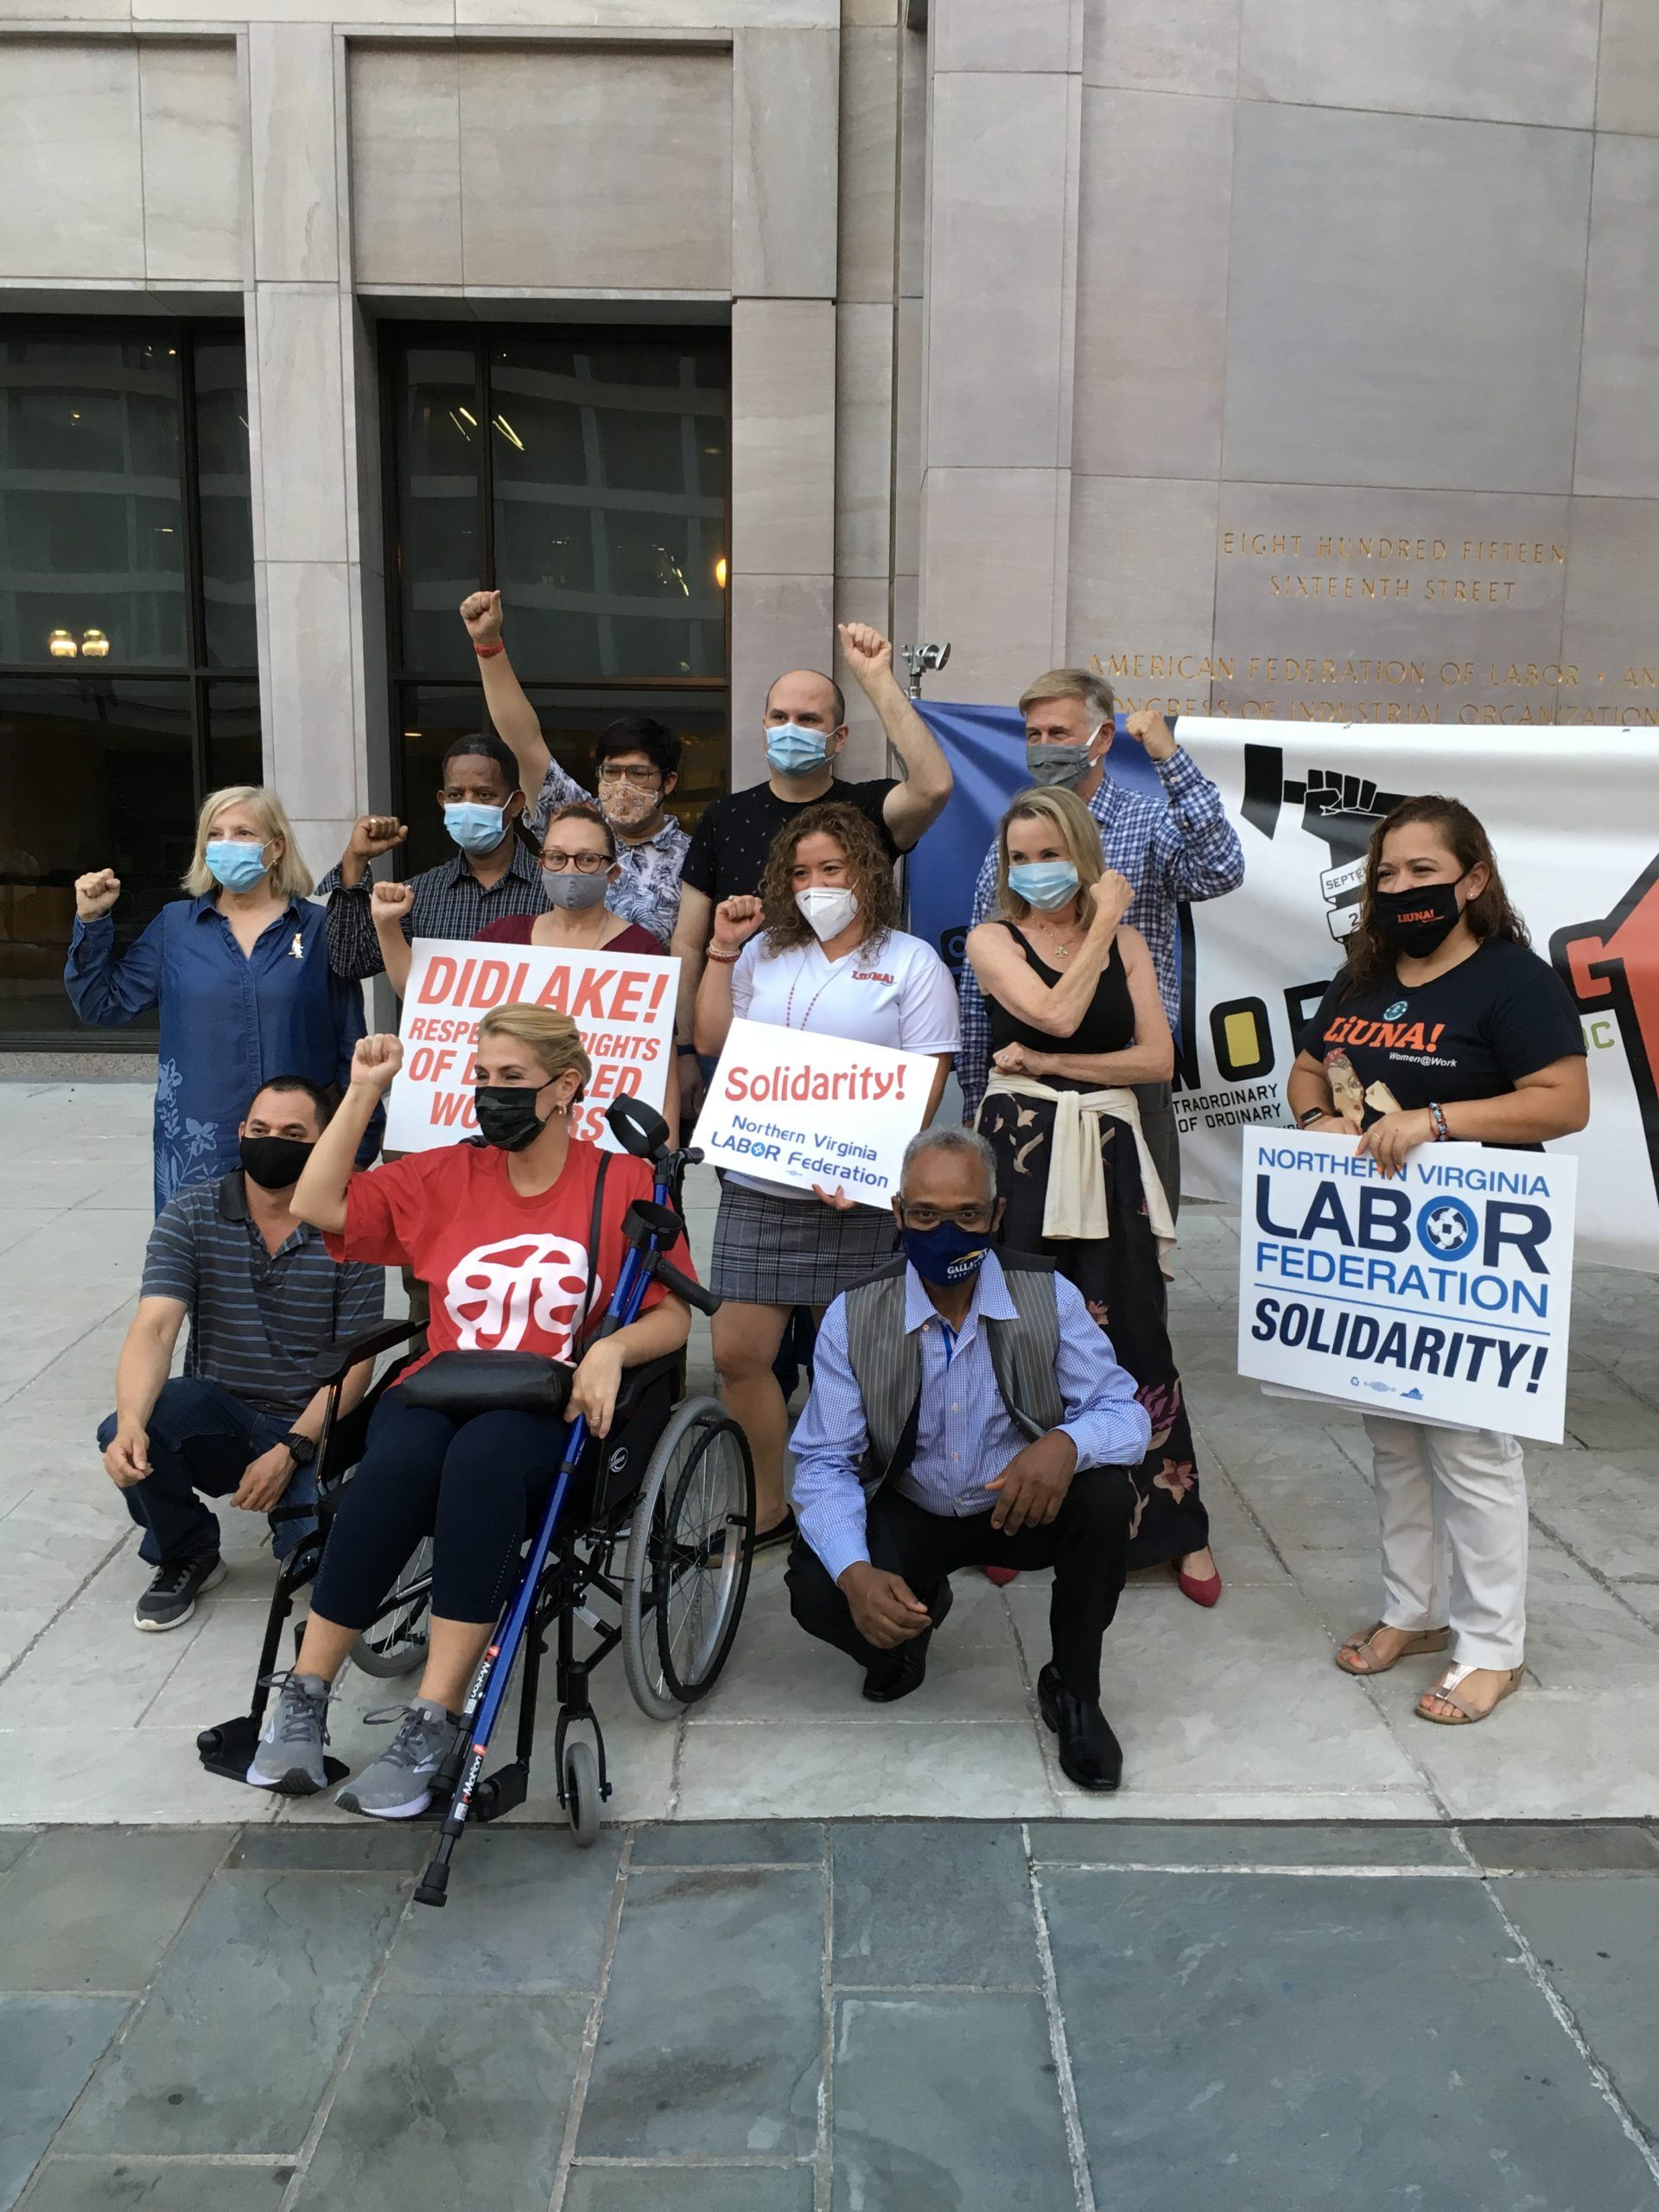 Virginia Diamond standing left in blue dress, Sara Nelson (wheelchair front) in red shirt, Don & Megan Beyer standing right back. Others present are workers with disabilities who work for Didlake corporation who are trying to unionize for equal wages. (Photo: Mary K. Leonard)